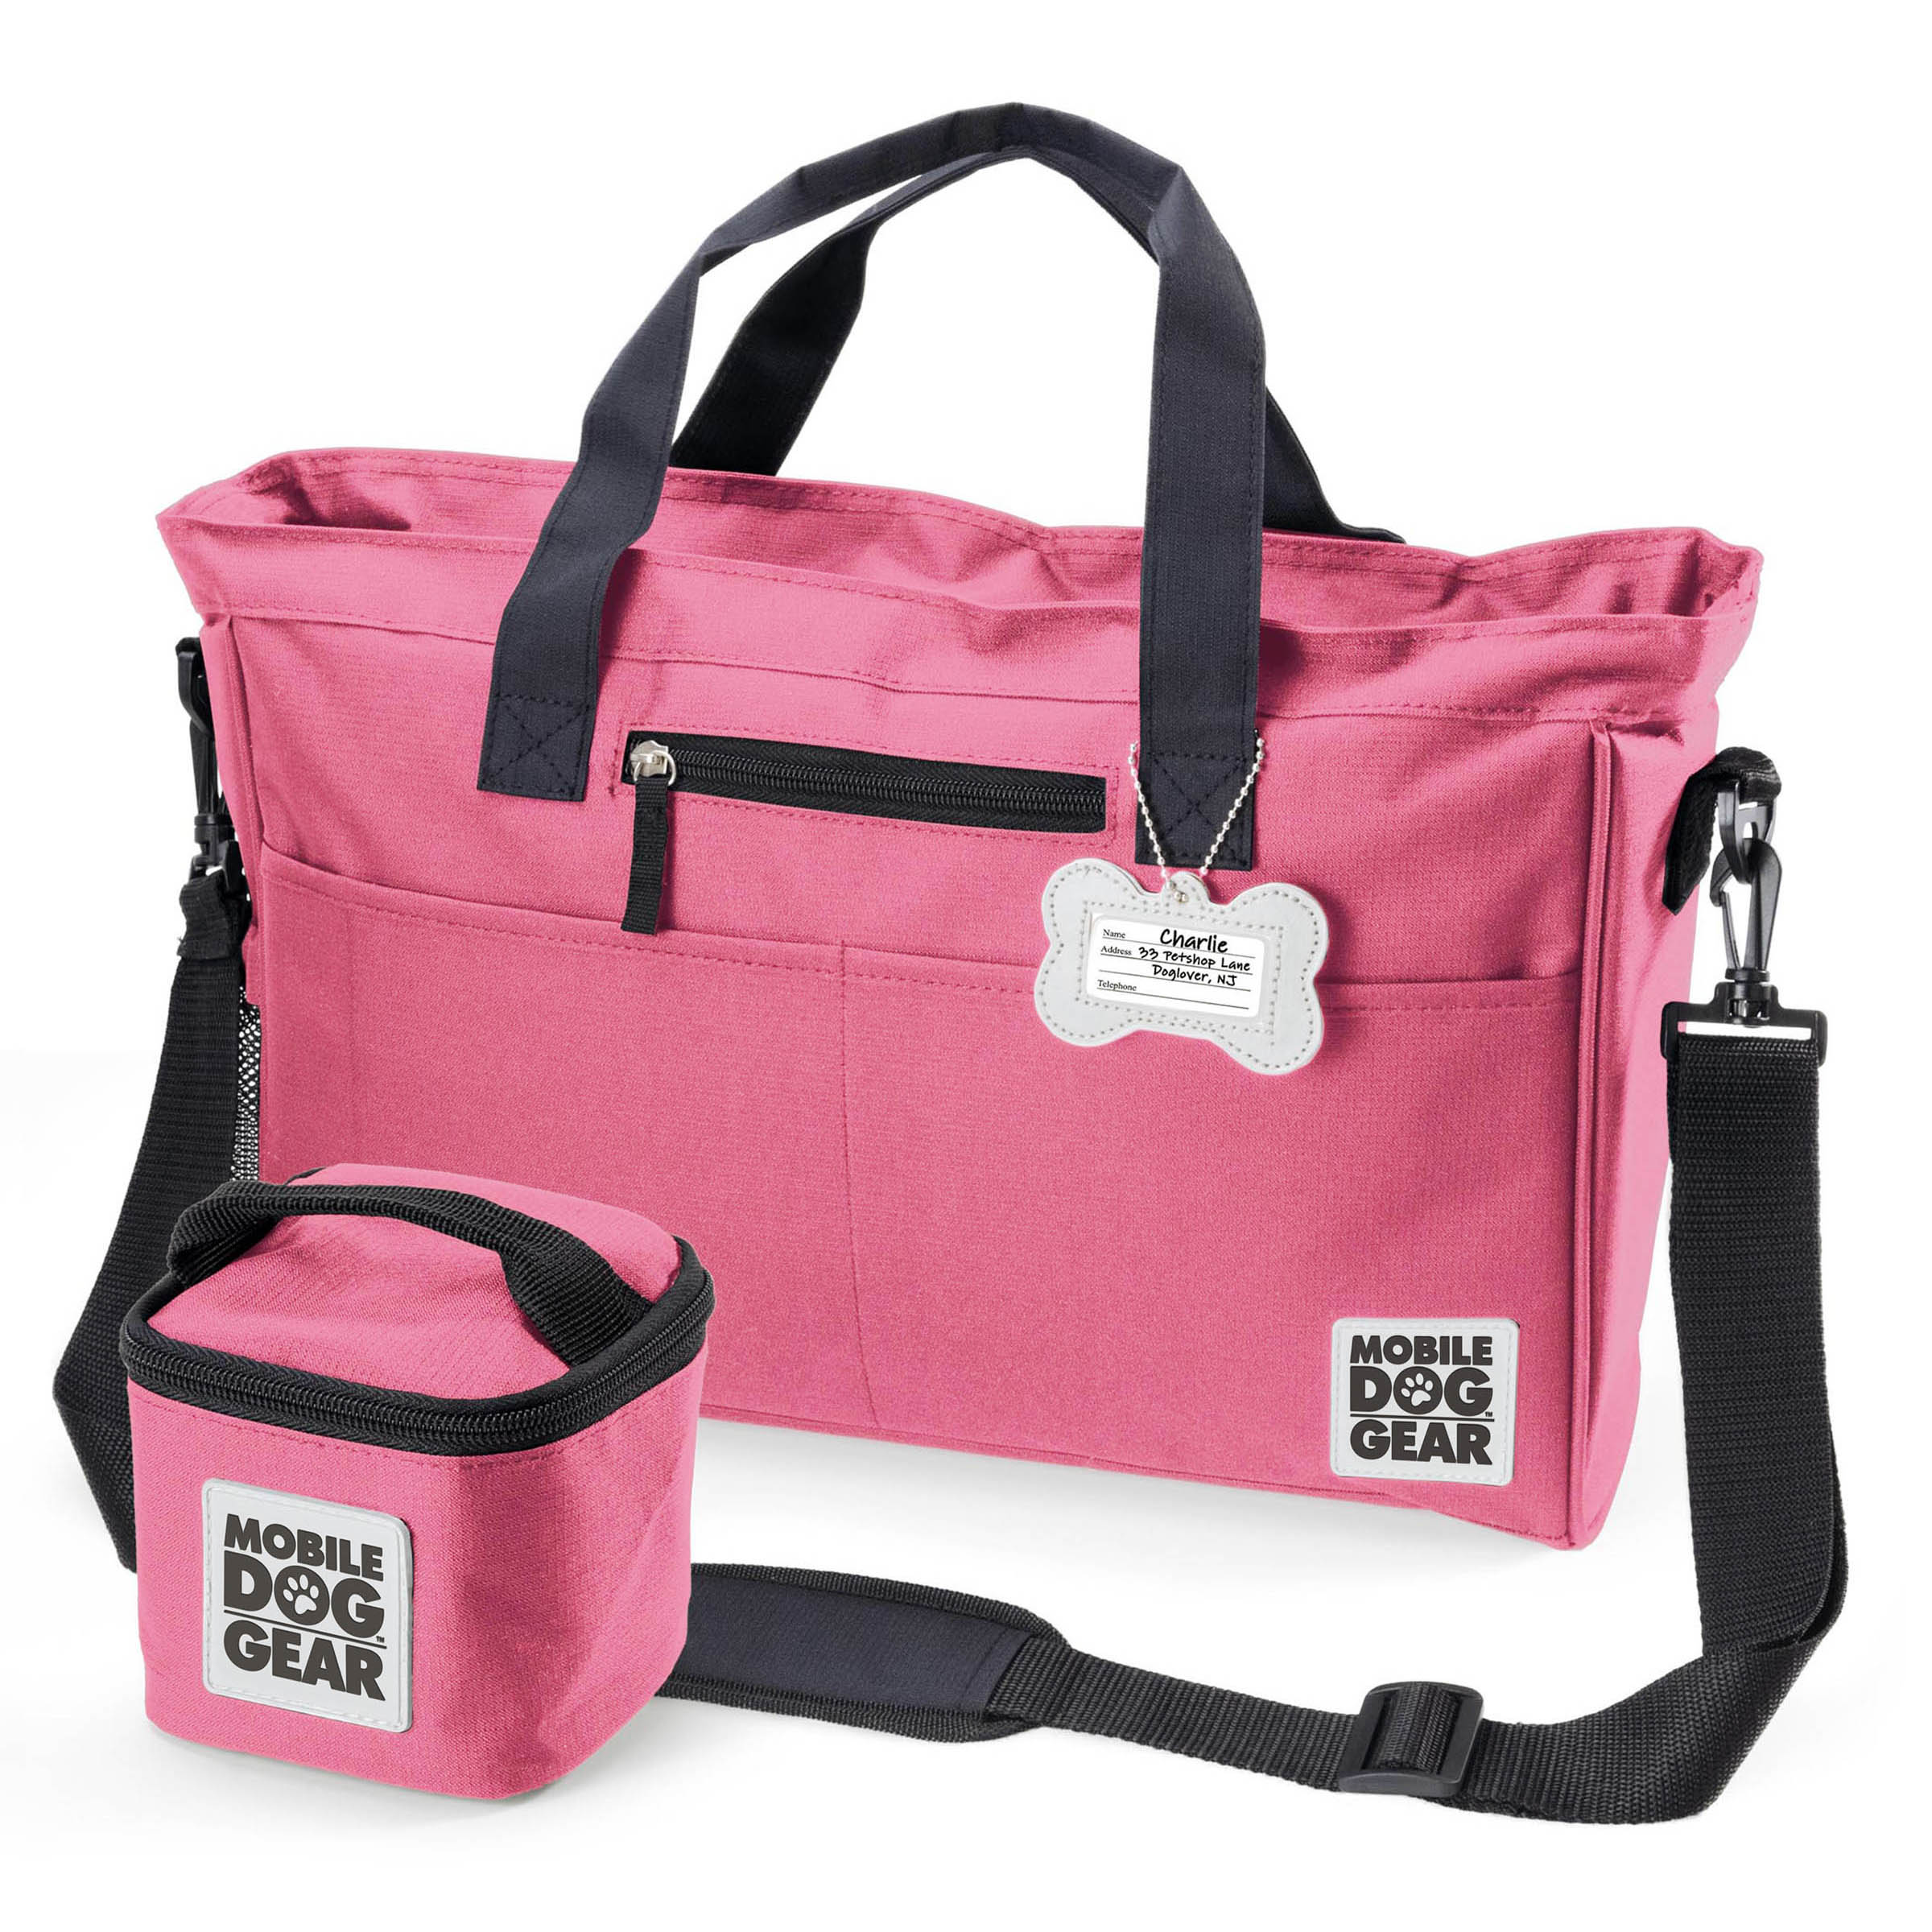 5 - MDG Day Away - PINK beauty shot bag and food carrier closed - no dog.jpg